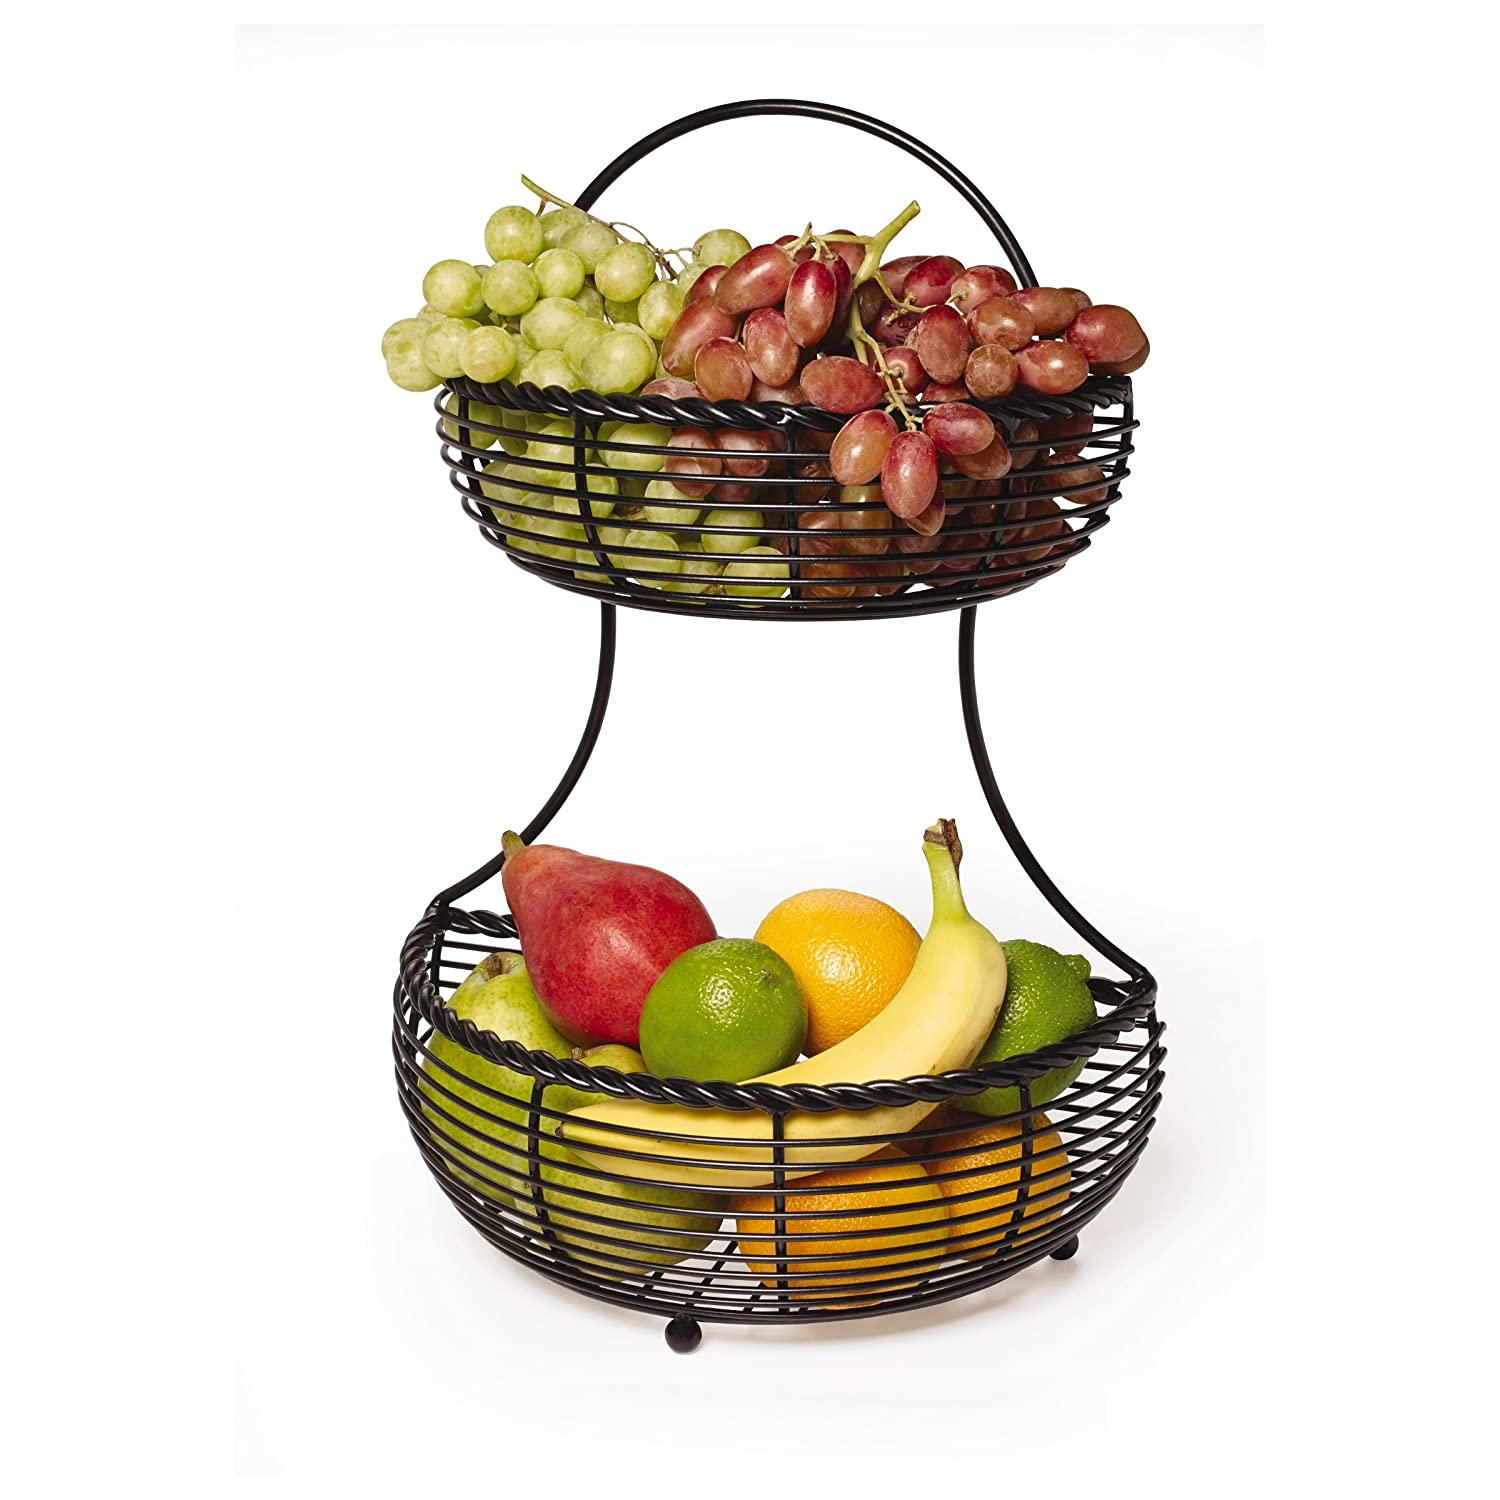 Designer Fruit Basket 2 Tier Fruit Basket Countertop Kitchen Storage Holder